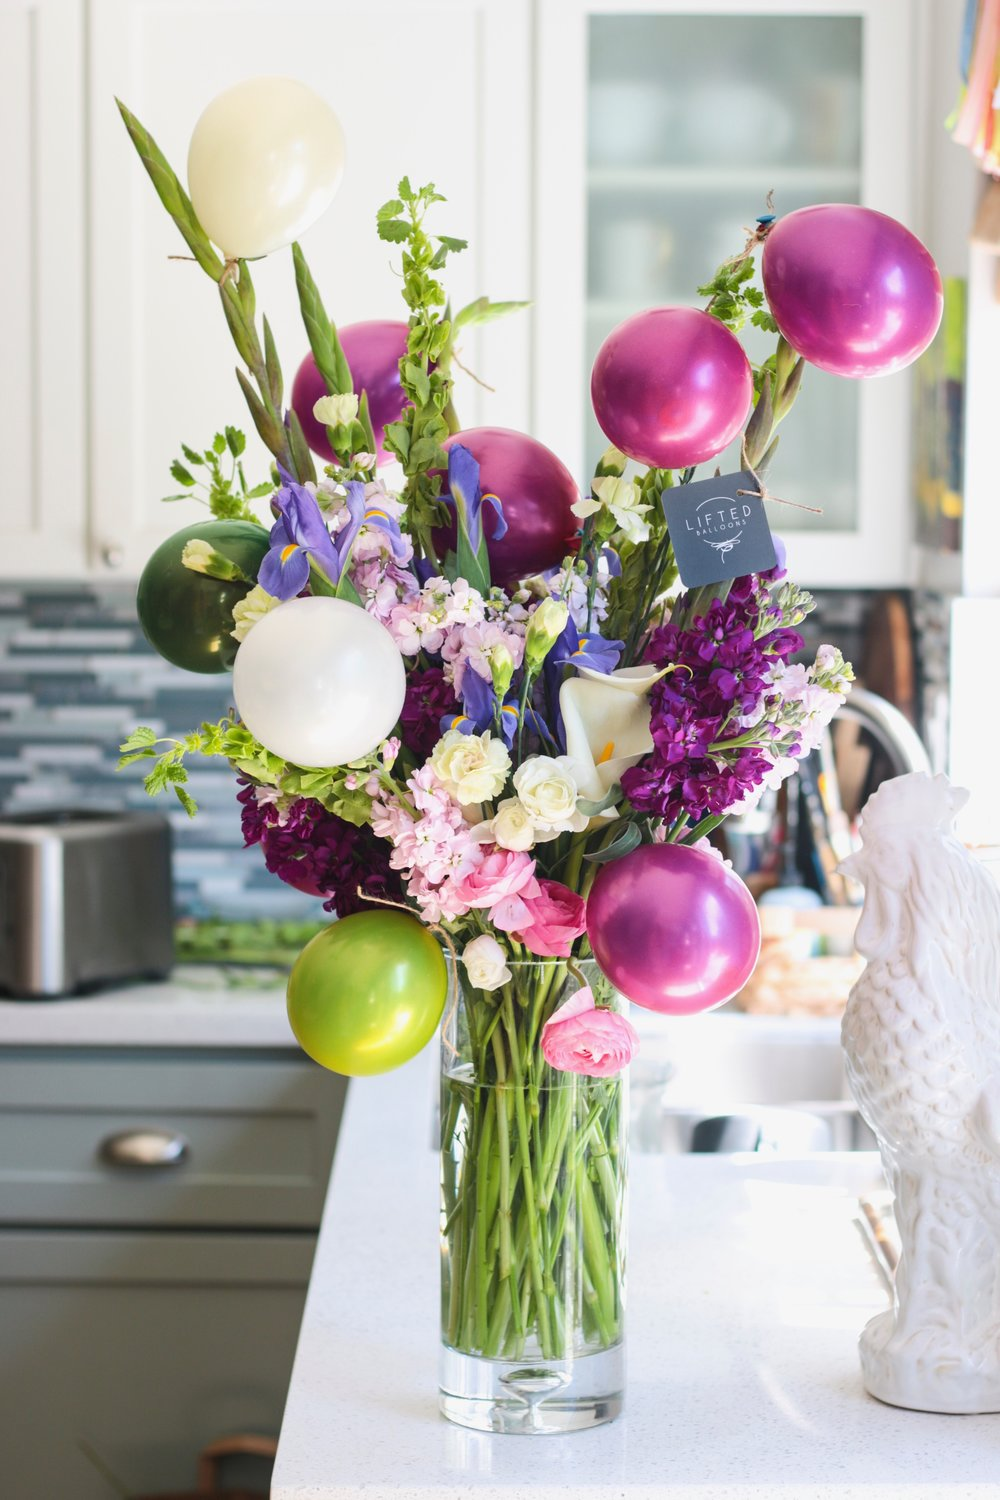 lifted-balloons-martinez-california-flowers-mini-pearl-balloons